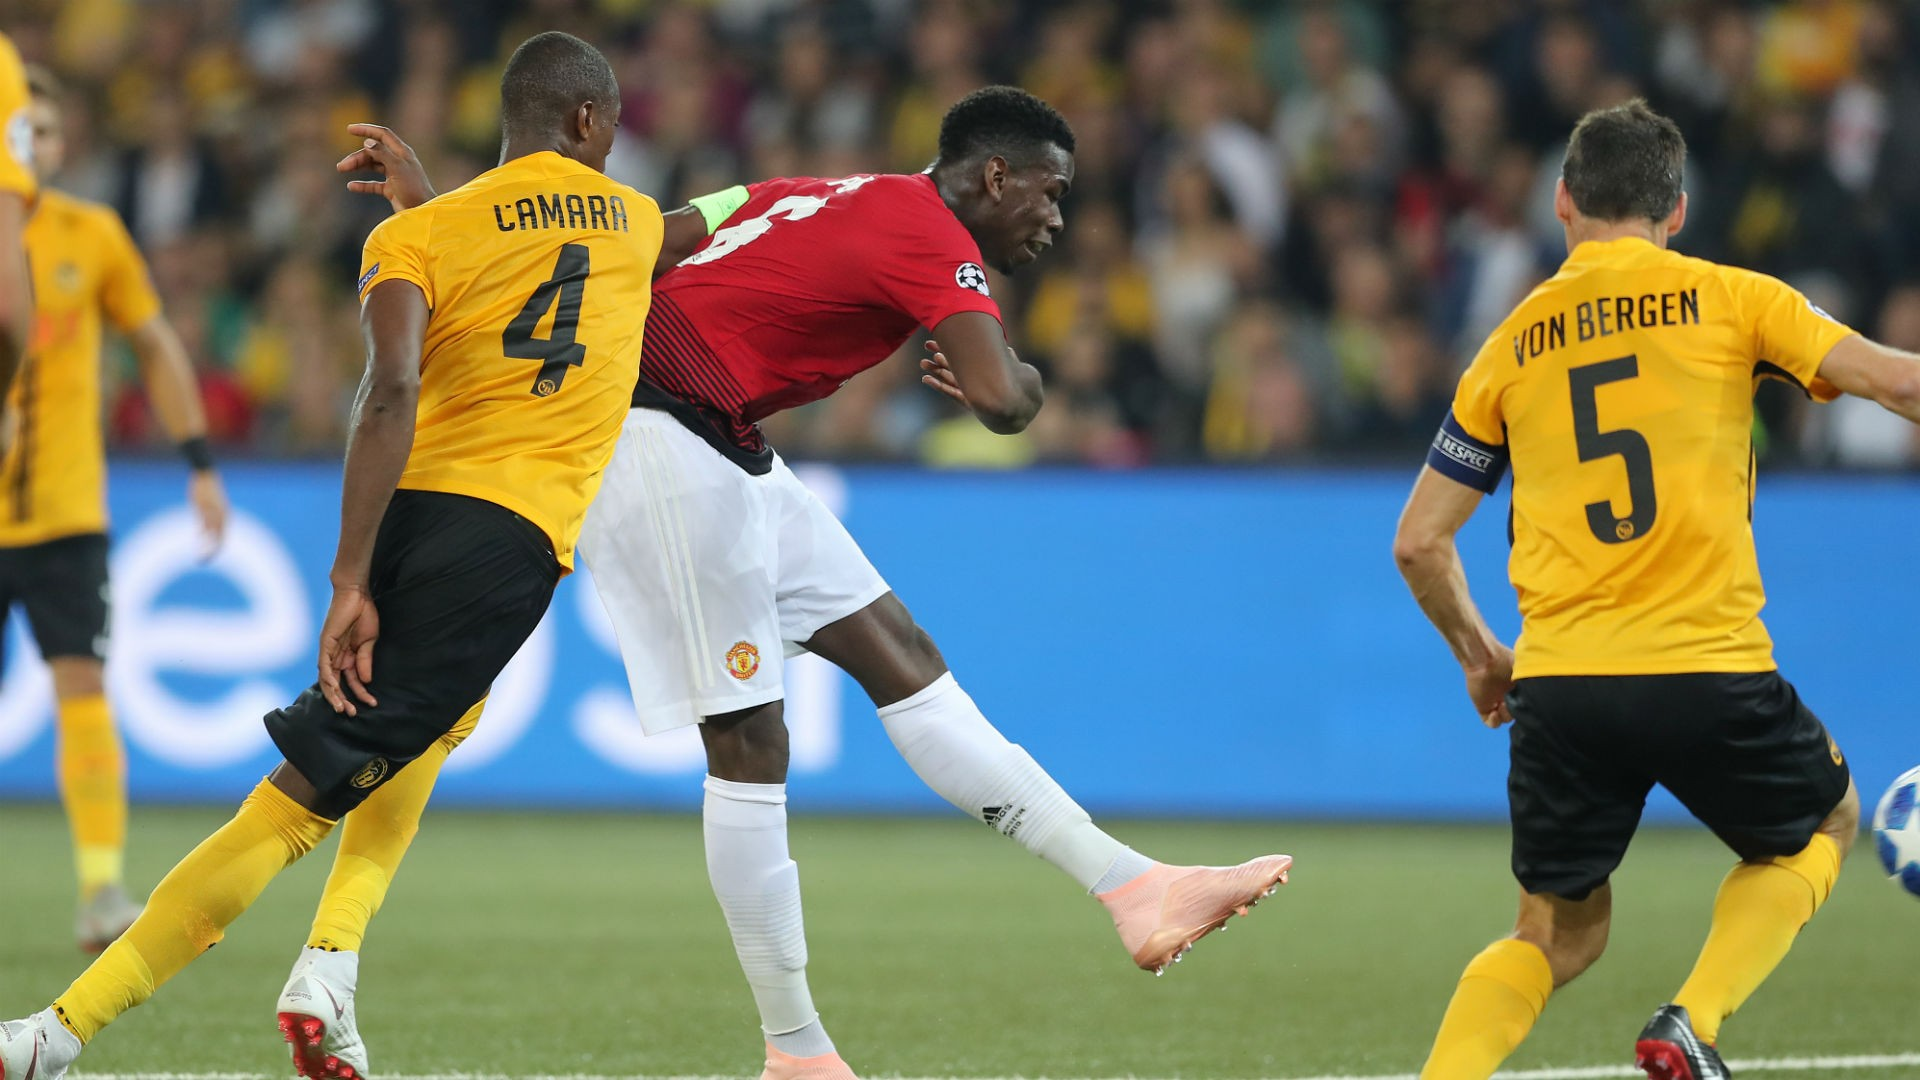 UCL (2018-2019) Report: Young Boys 0 Manchester United 3 - Pogba double inspires Red Devils